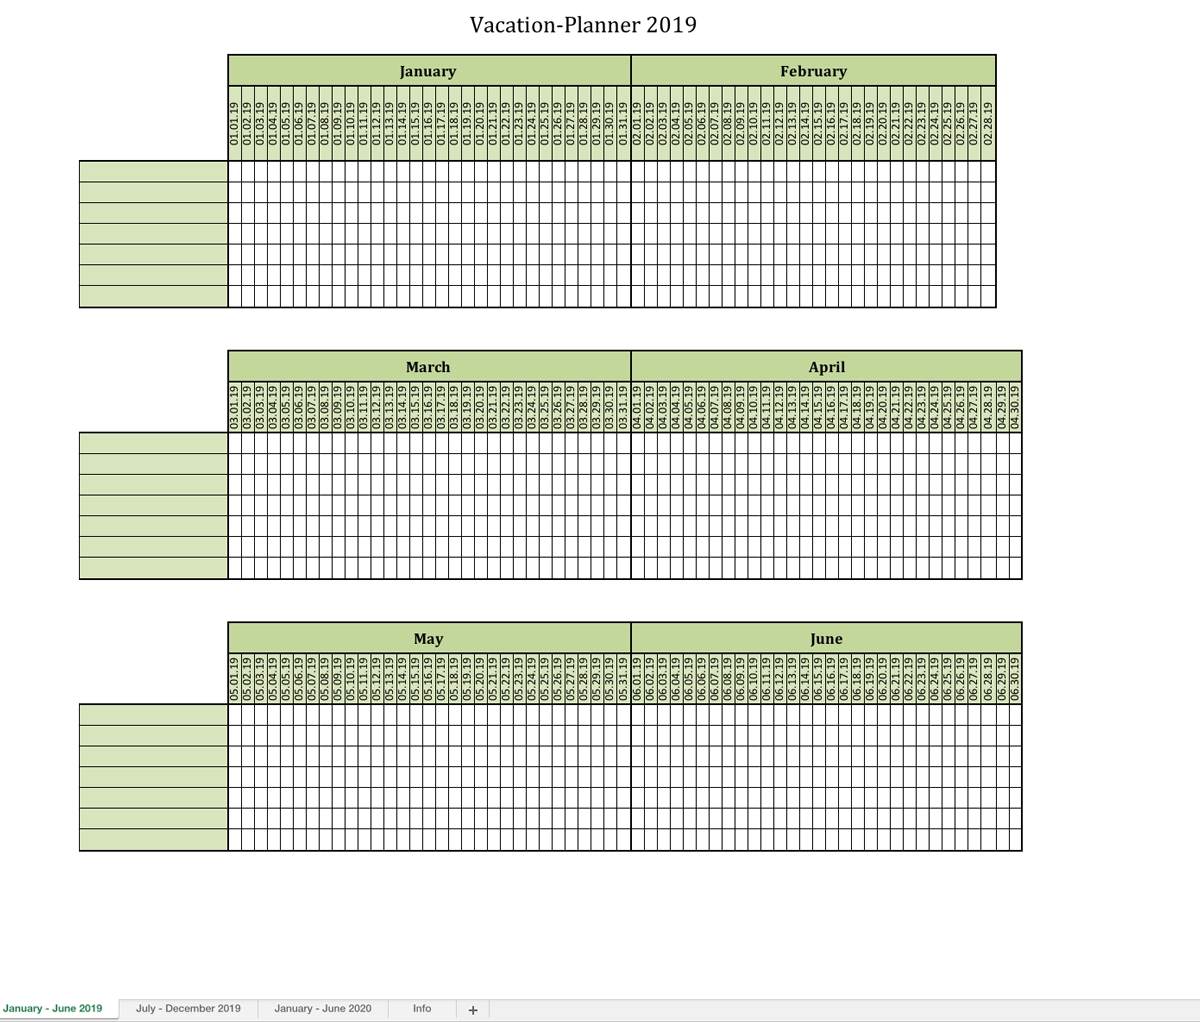 Vacation-Planner 2019 | Excel Templates For Every Purpose-2020 Employee Vacation Planner Template